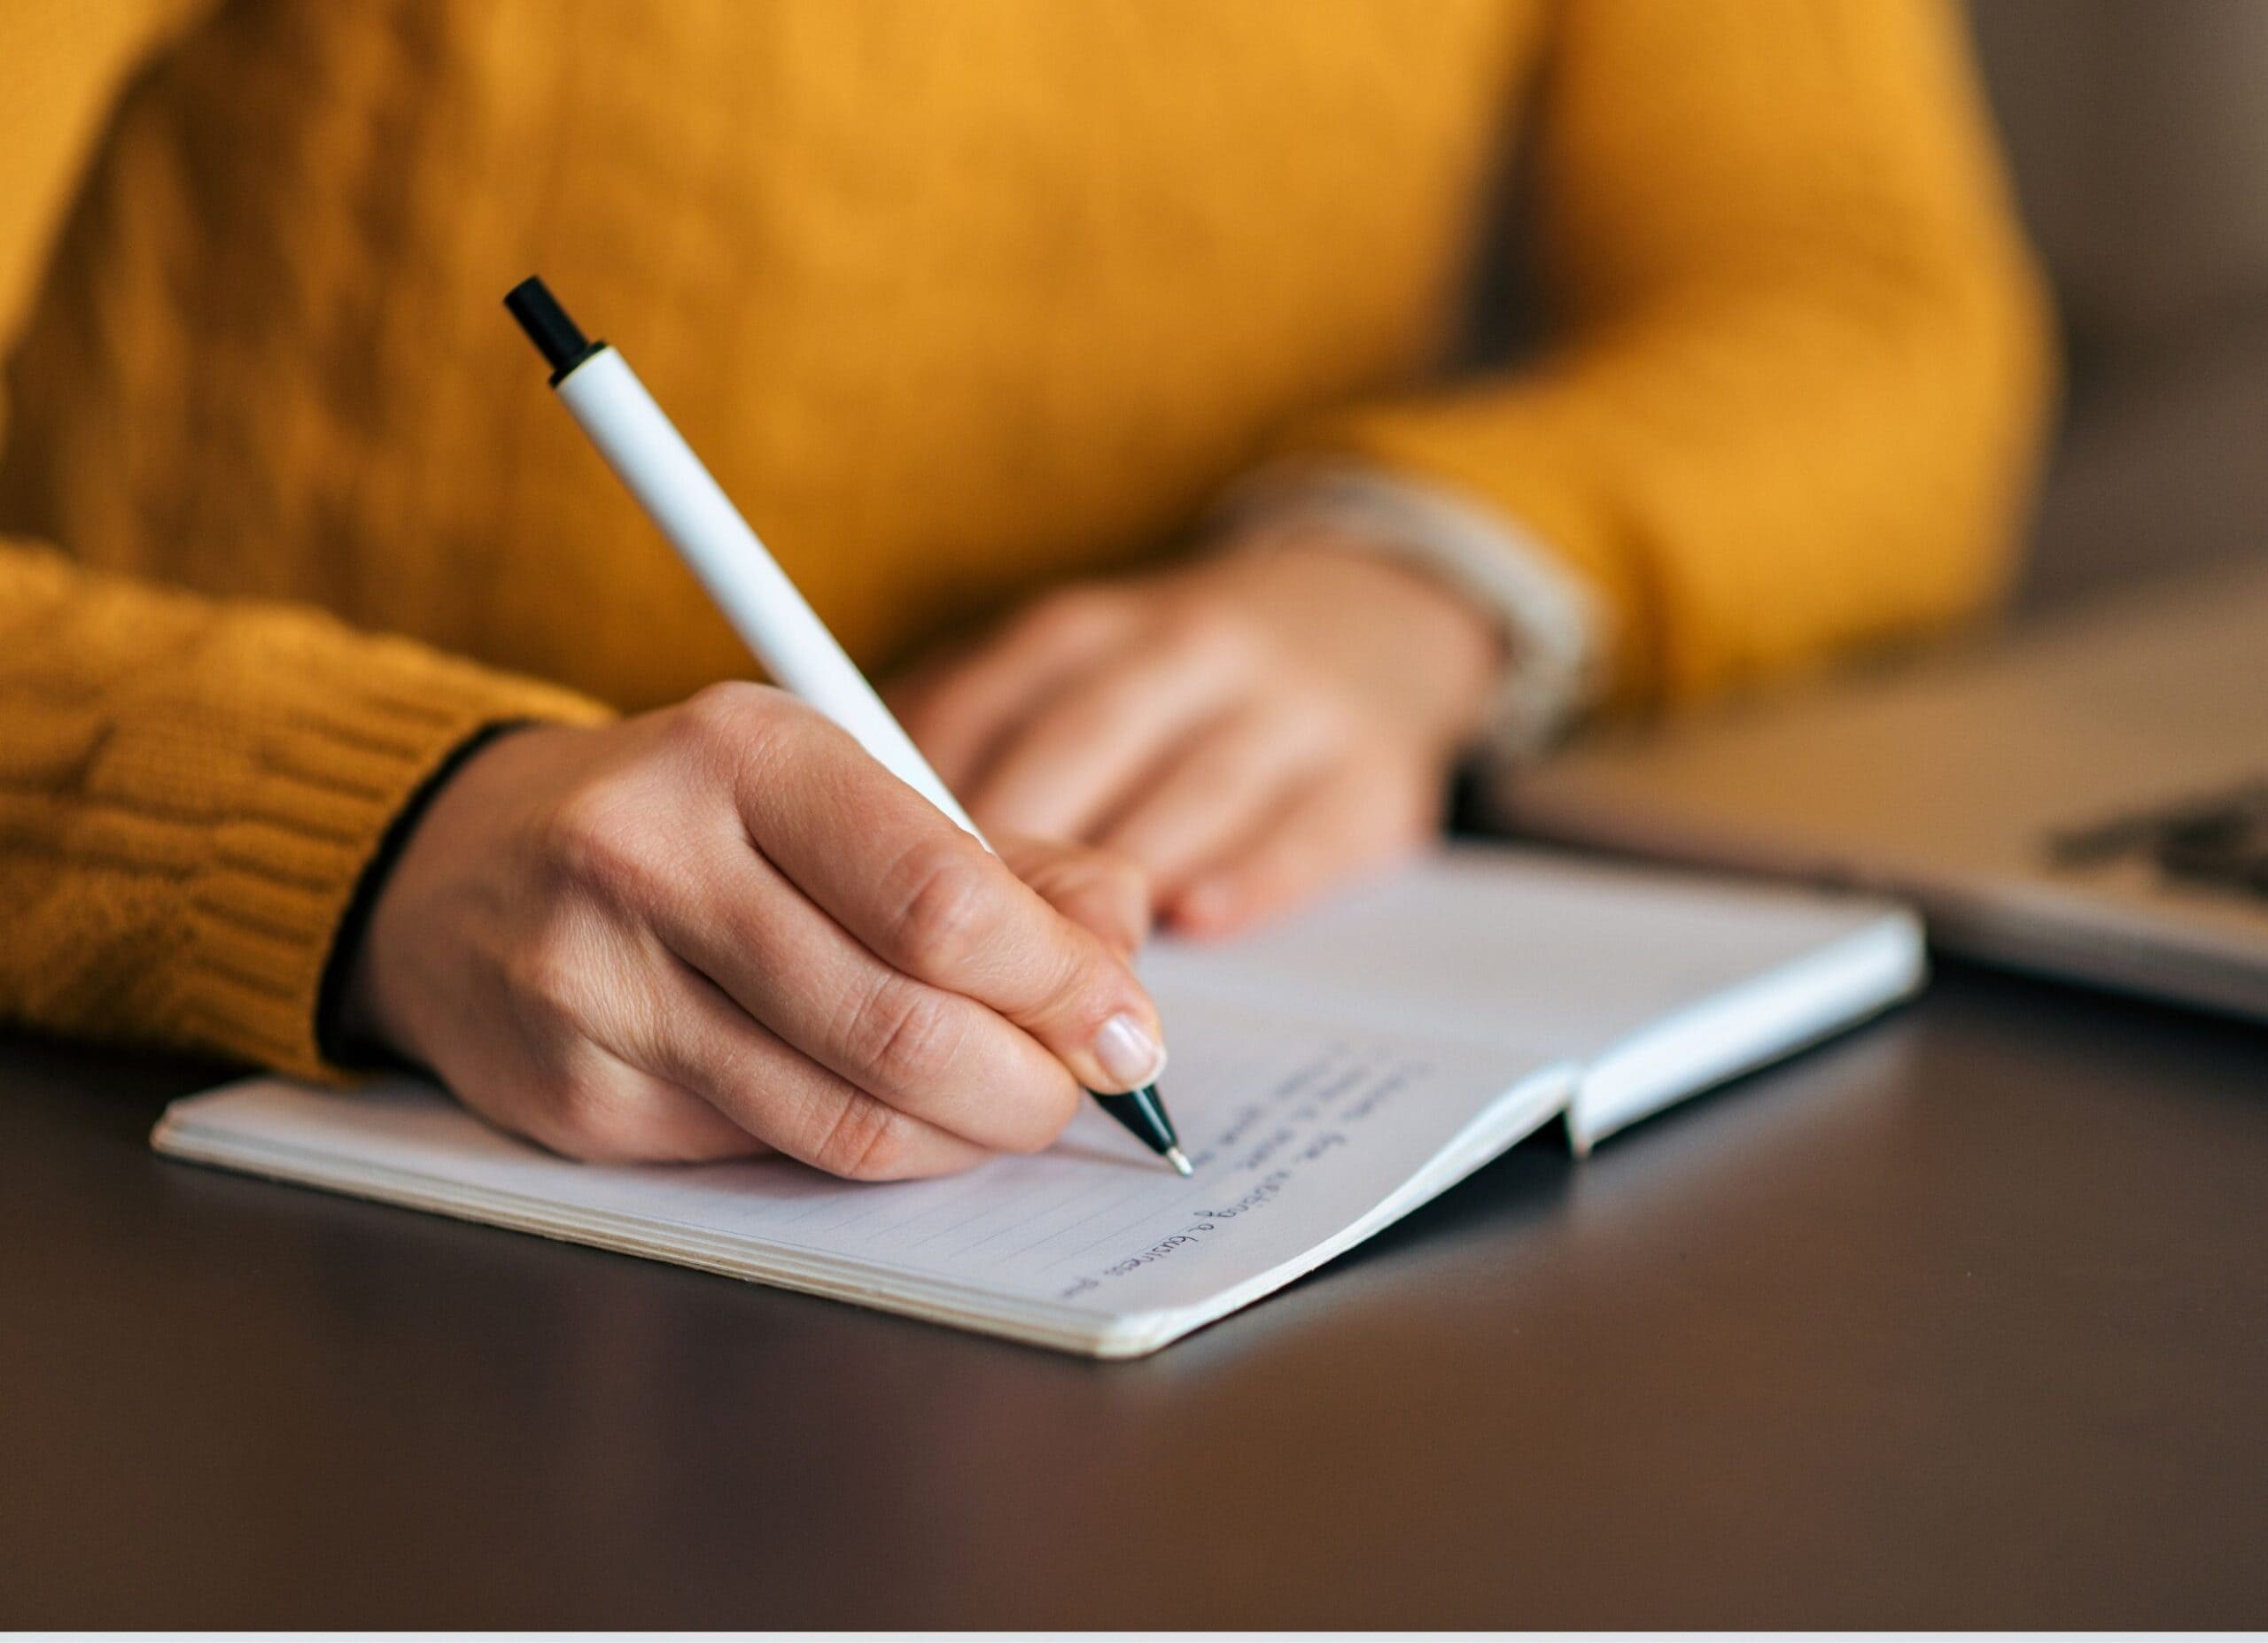 Helping Your Child with their Writing Skills